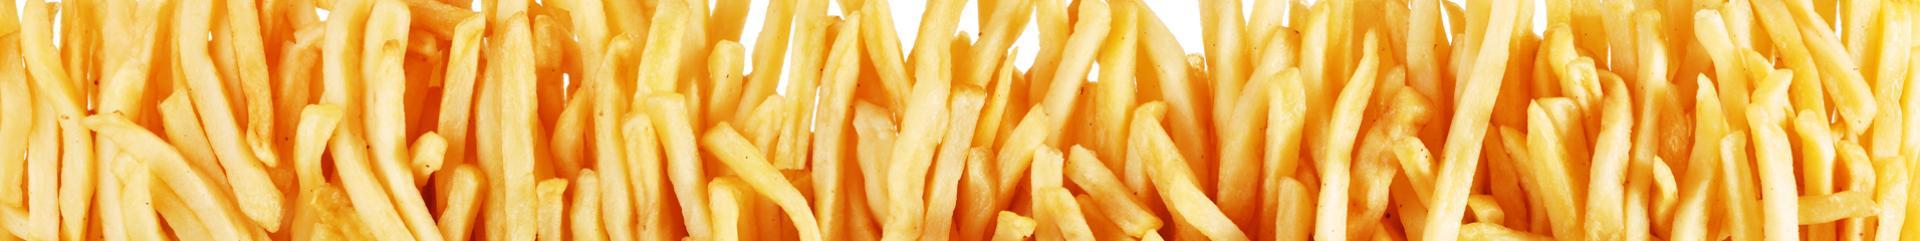 Wholesale frozen french potatoe fries